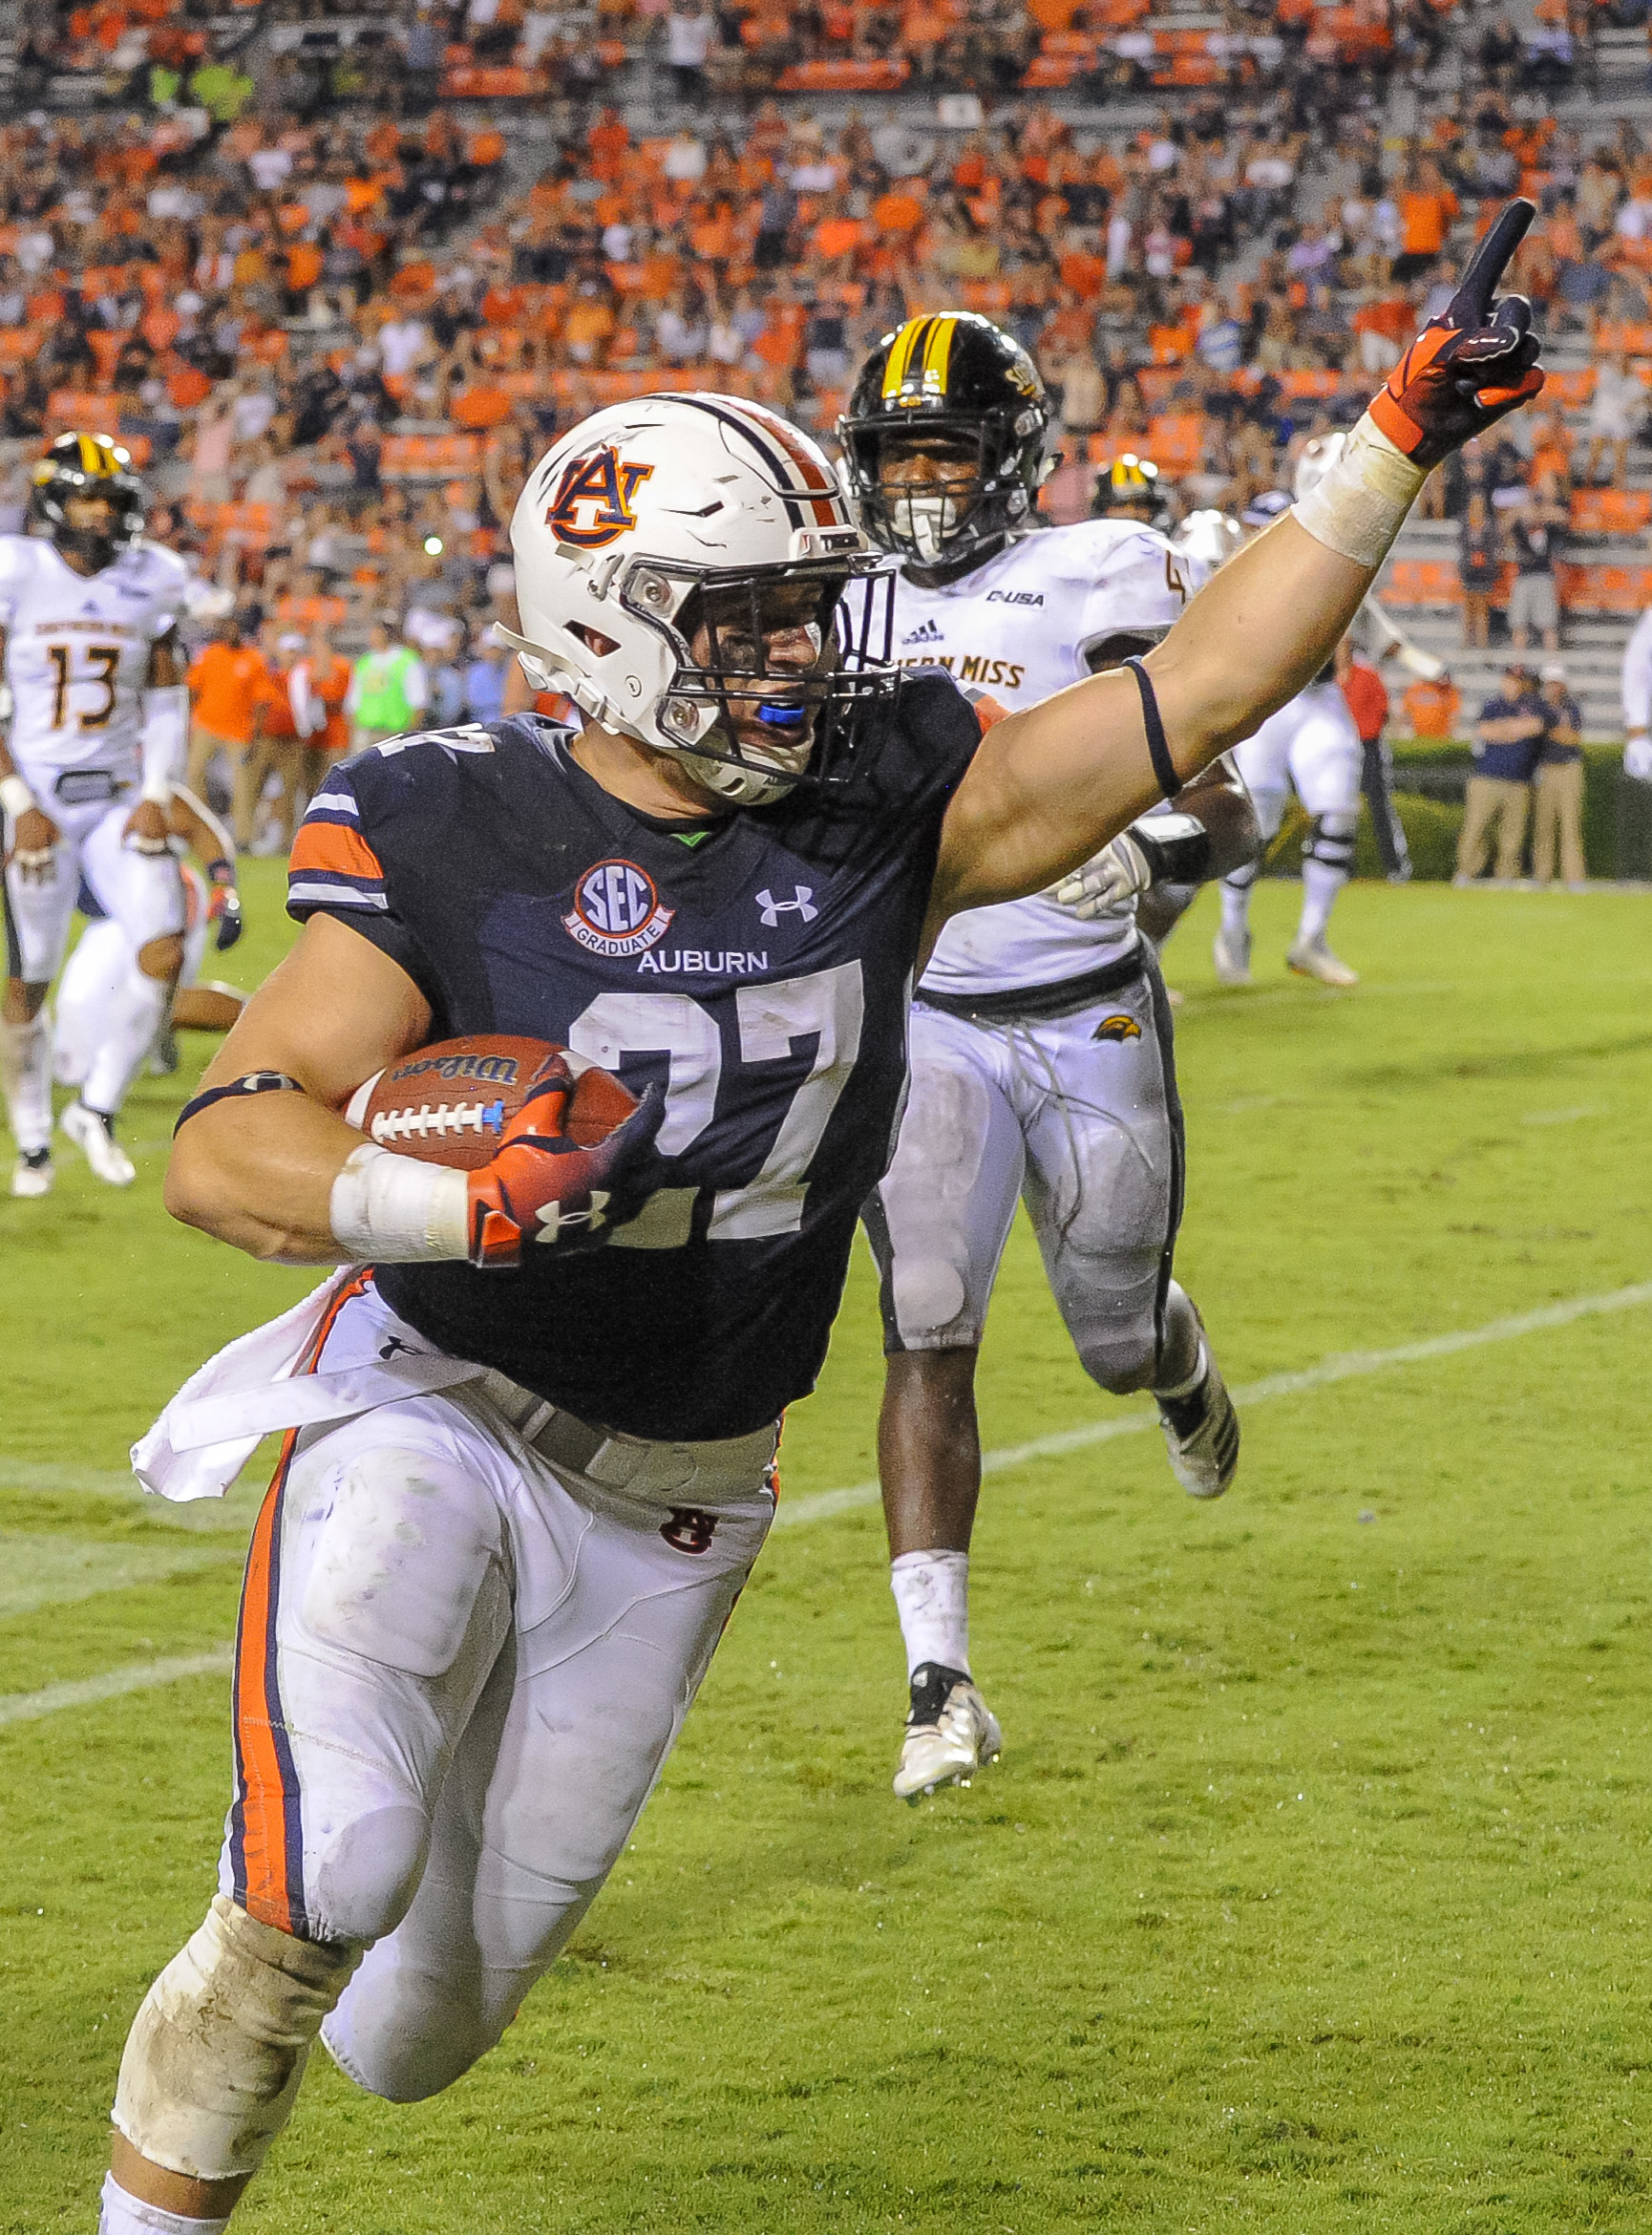 Auburn Tigers fullback Chandler Cox celebrates  a touchdown catch during the second half of Saturday's game, at Jordan Hare Stadium in Auburn AL. Daily Mountain Eagle -  Jeff Johnsey